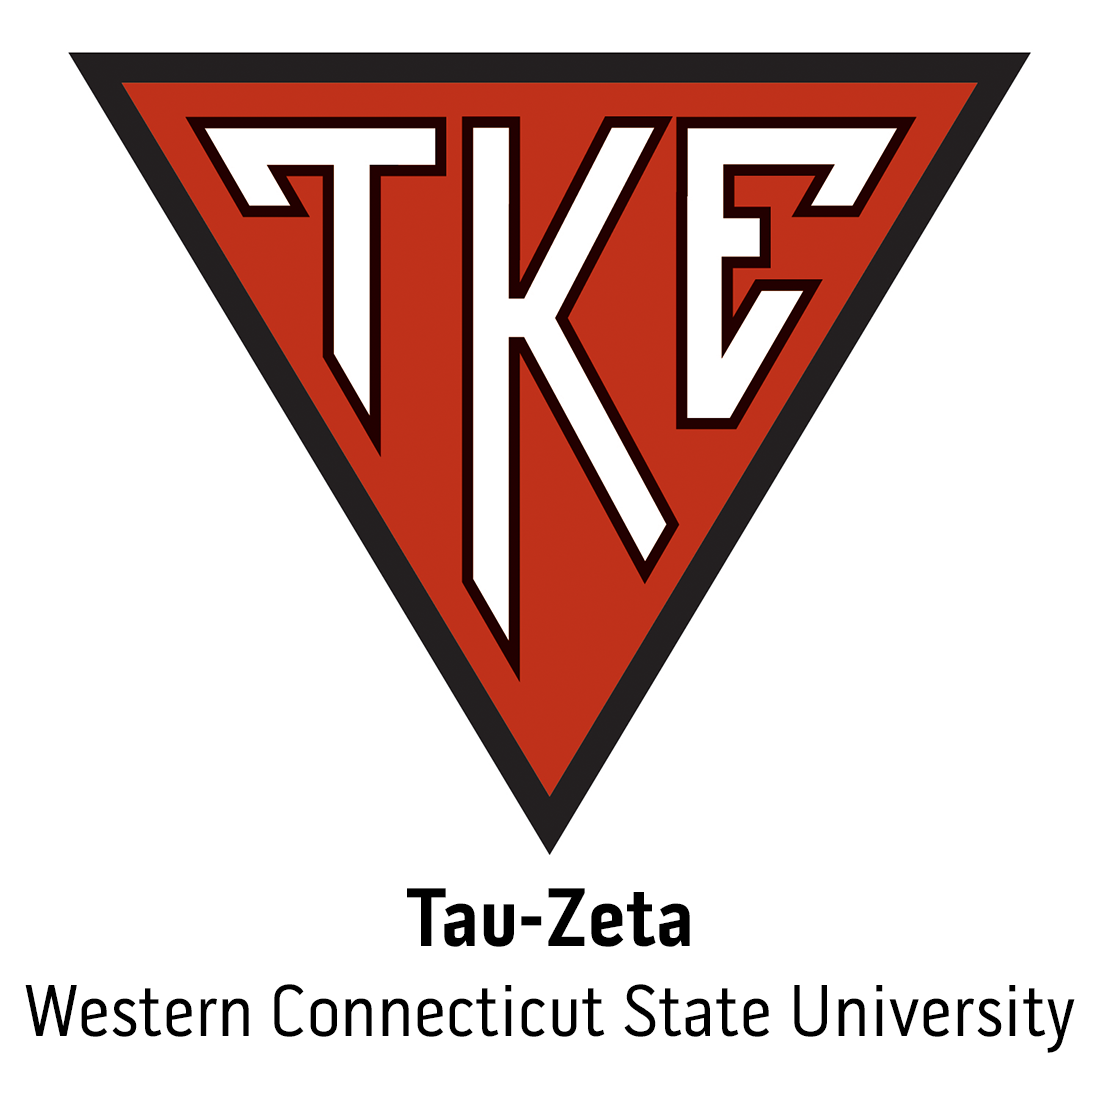 Tau-Zeta Chapter at Western Connecticut State University